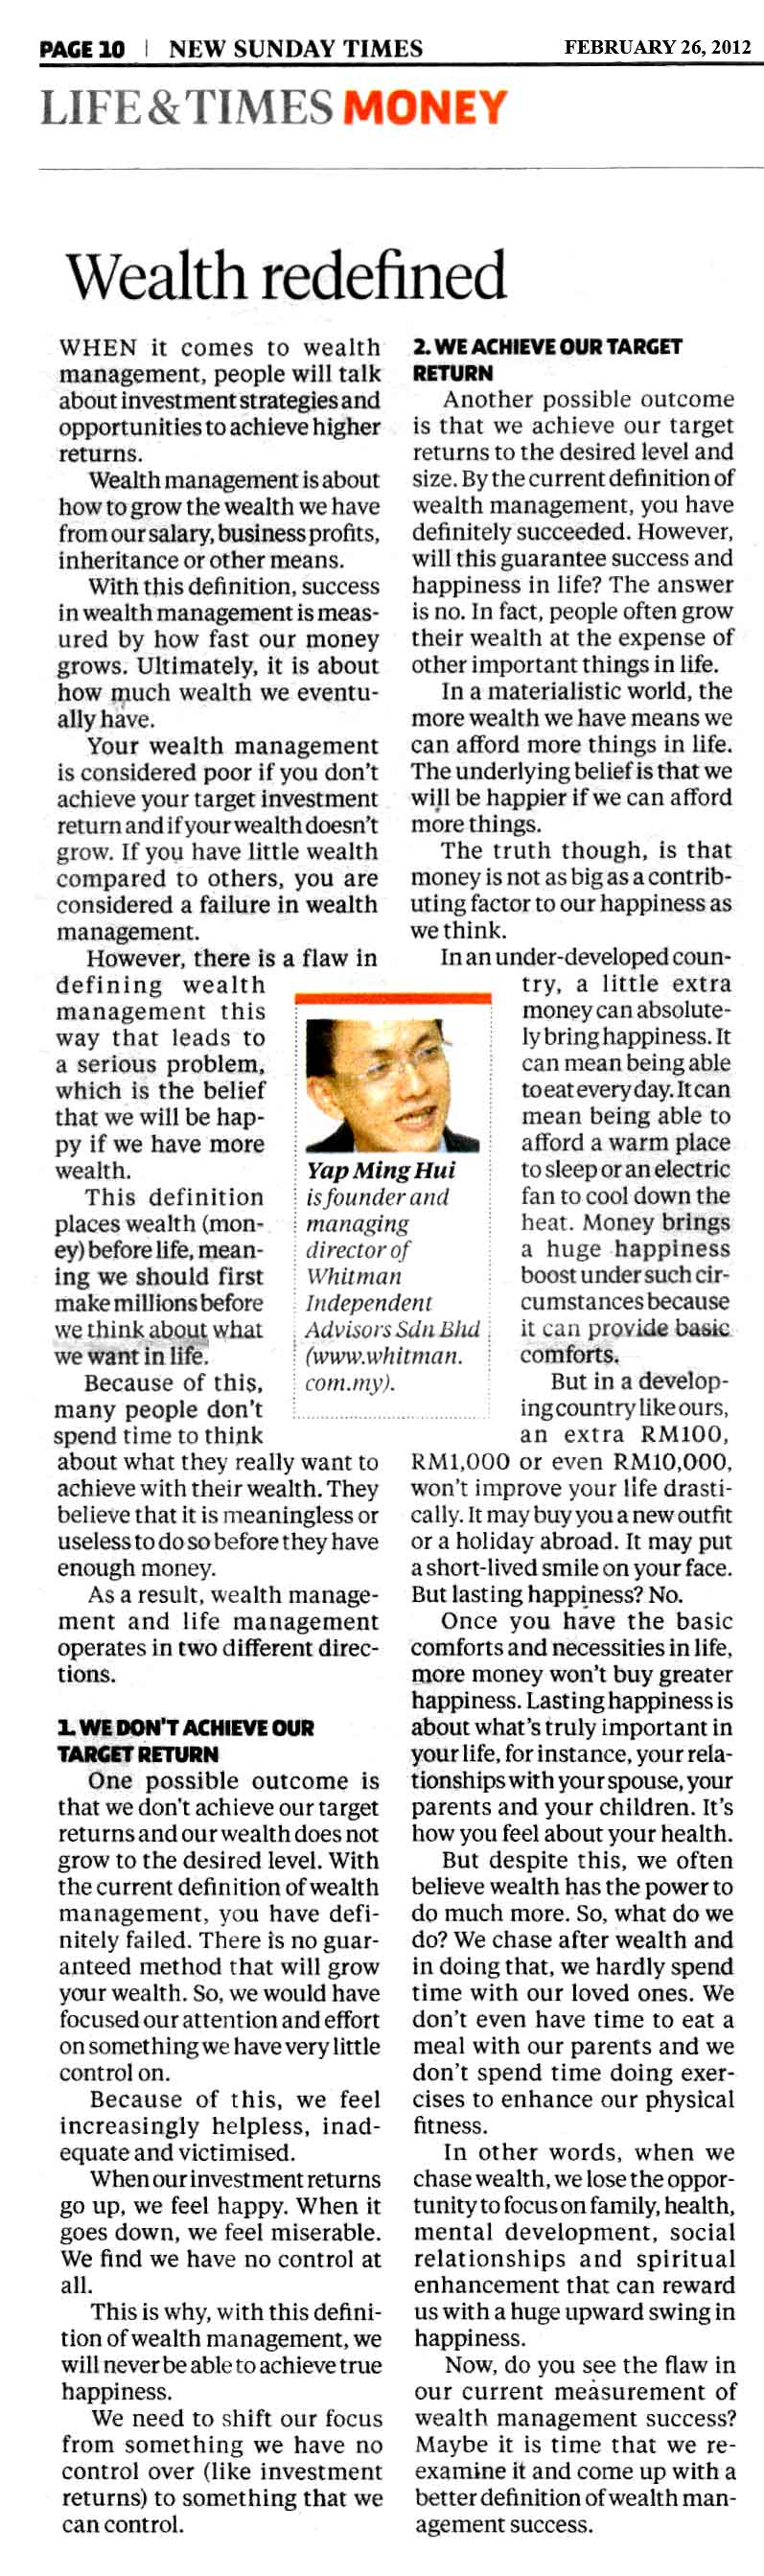 Wealth Redefined - 26 Feb 2012